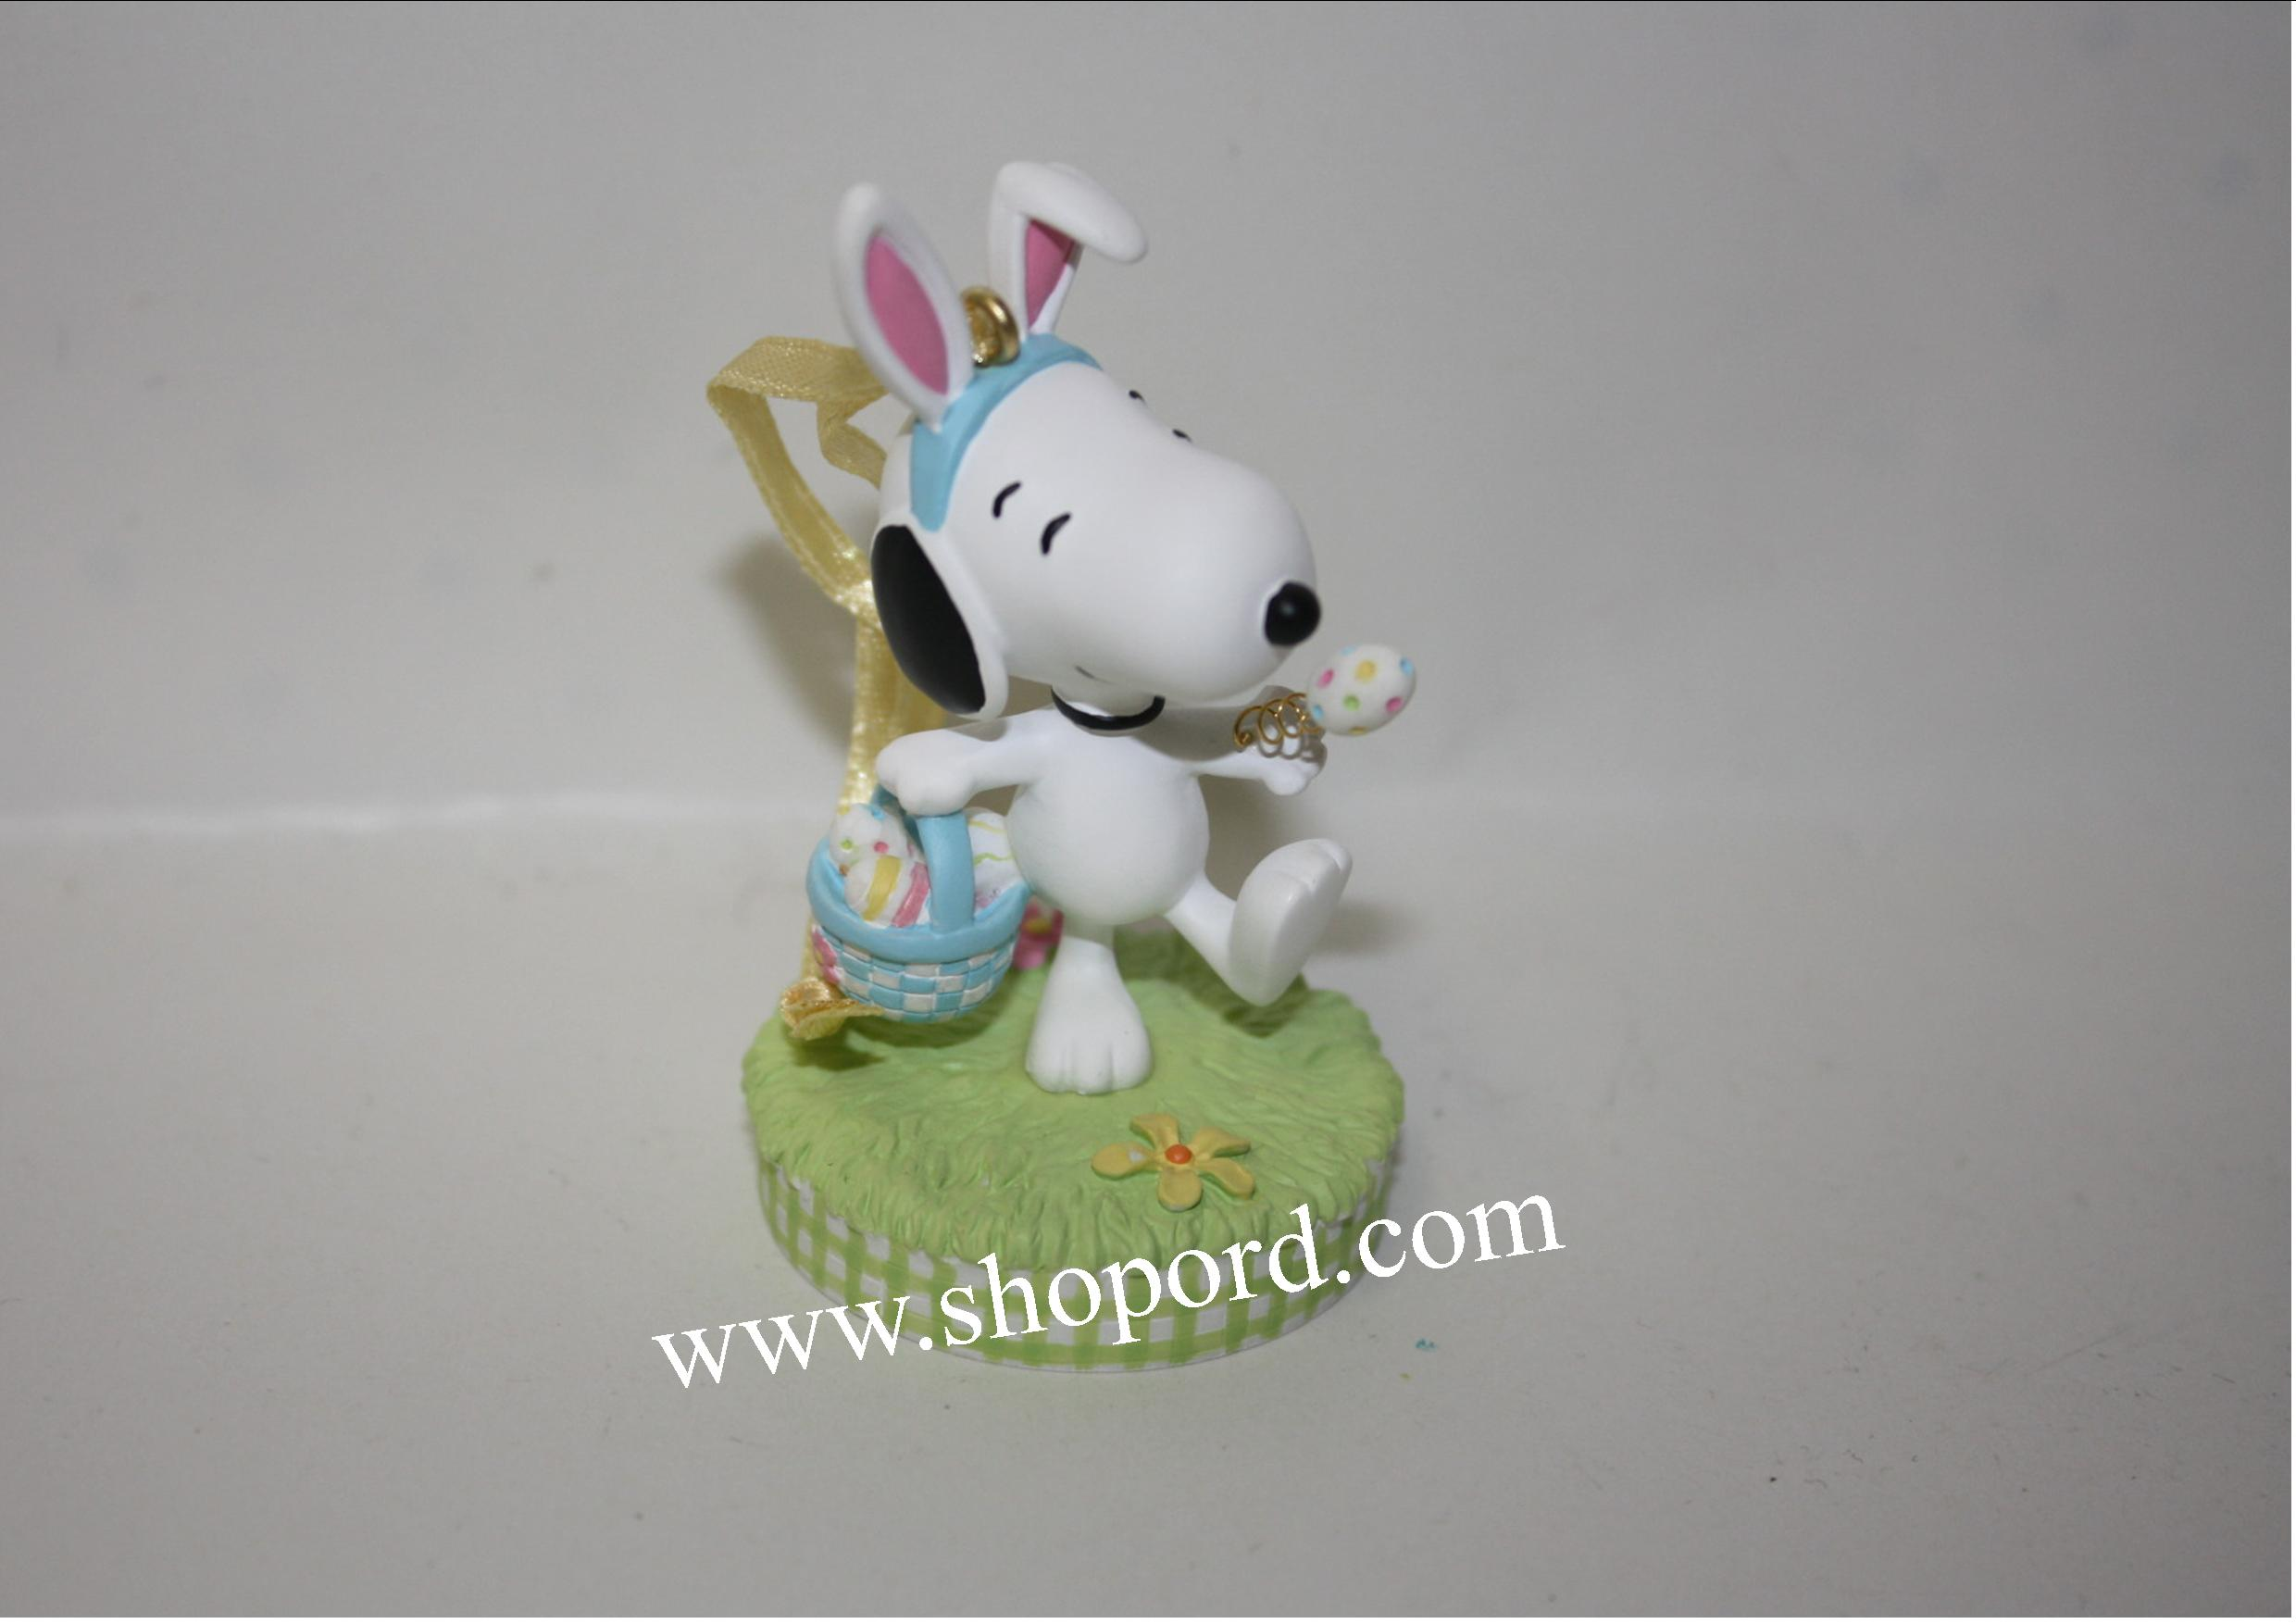 Hallmark 2004 Peanuts It's The Easter Beagle Snoopy Ornament QEO8361